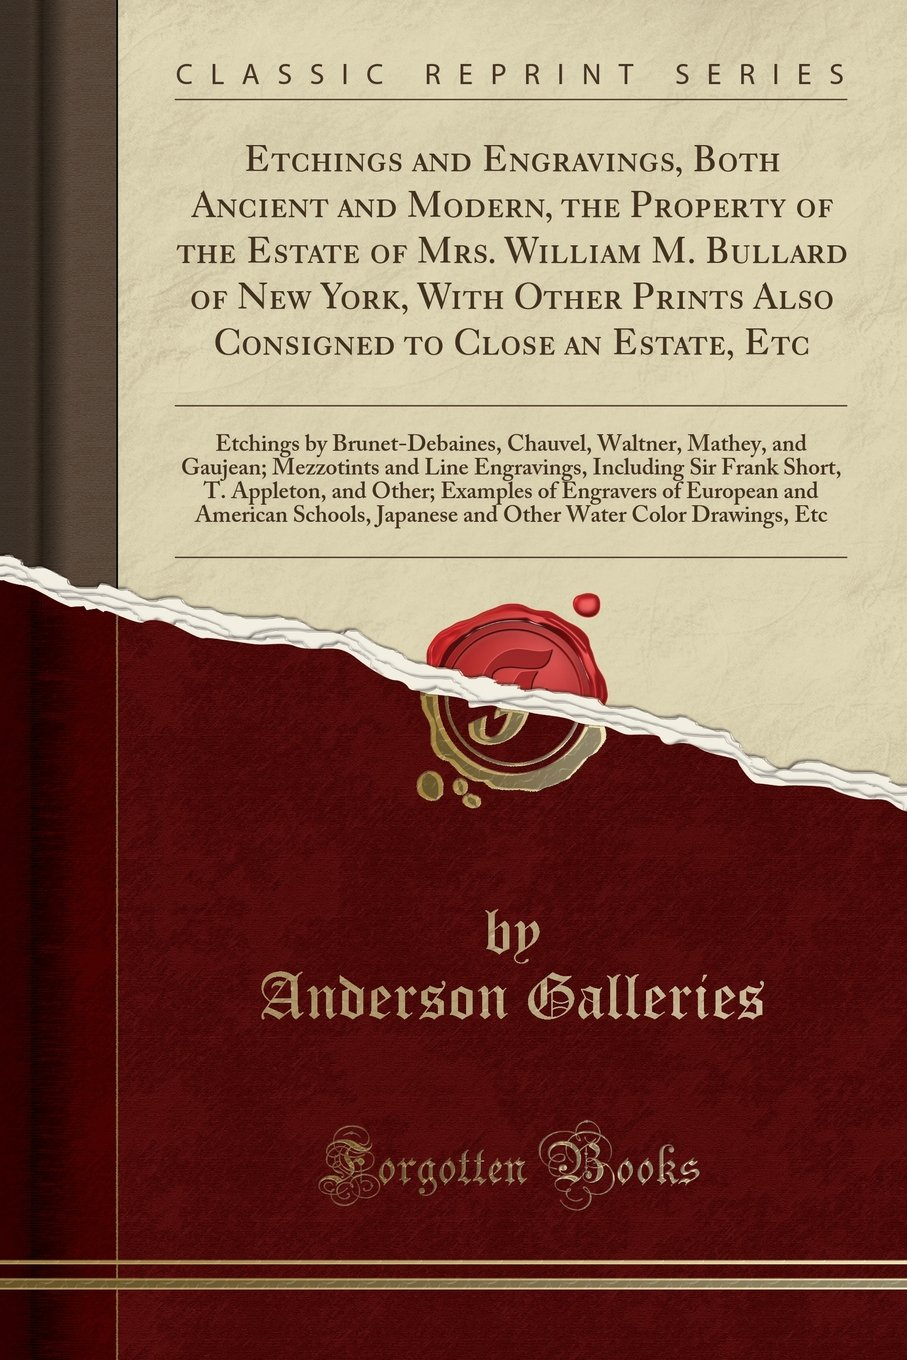 Etchings and Engravings, Both Ancient and Modern, the Property of the Estate of Mrs. William M. Bullard of New York, With Other Prints Also Consigned ... Waltner, Mathey, and Gaujean; Mezzotints a pdf